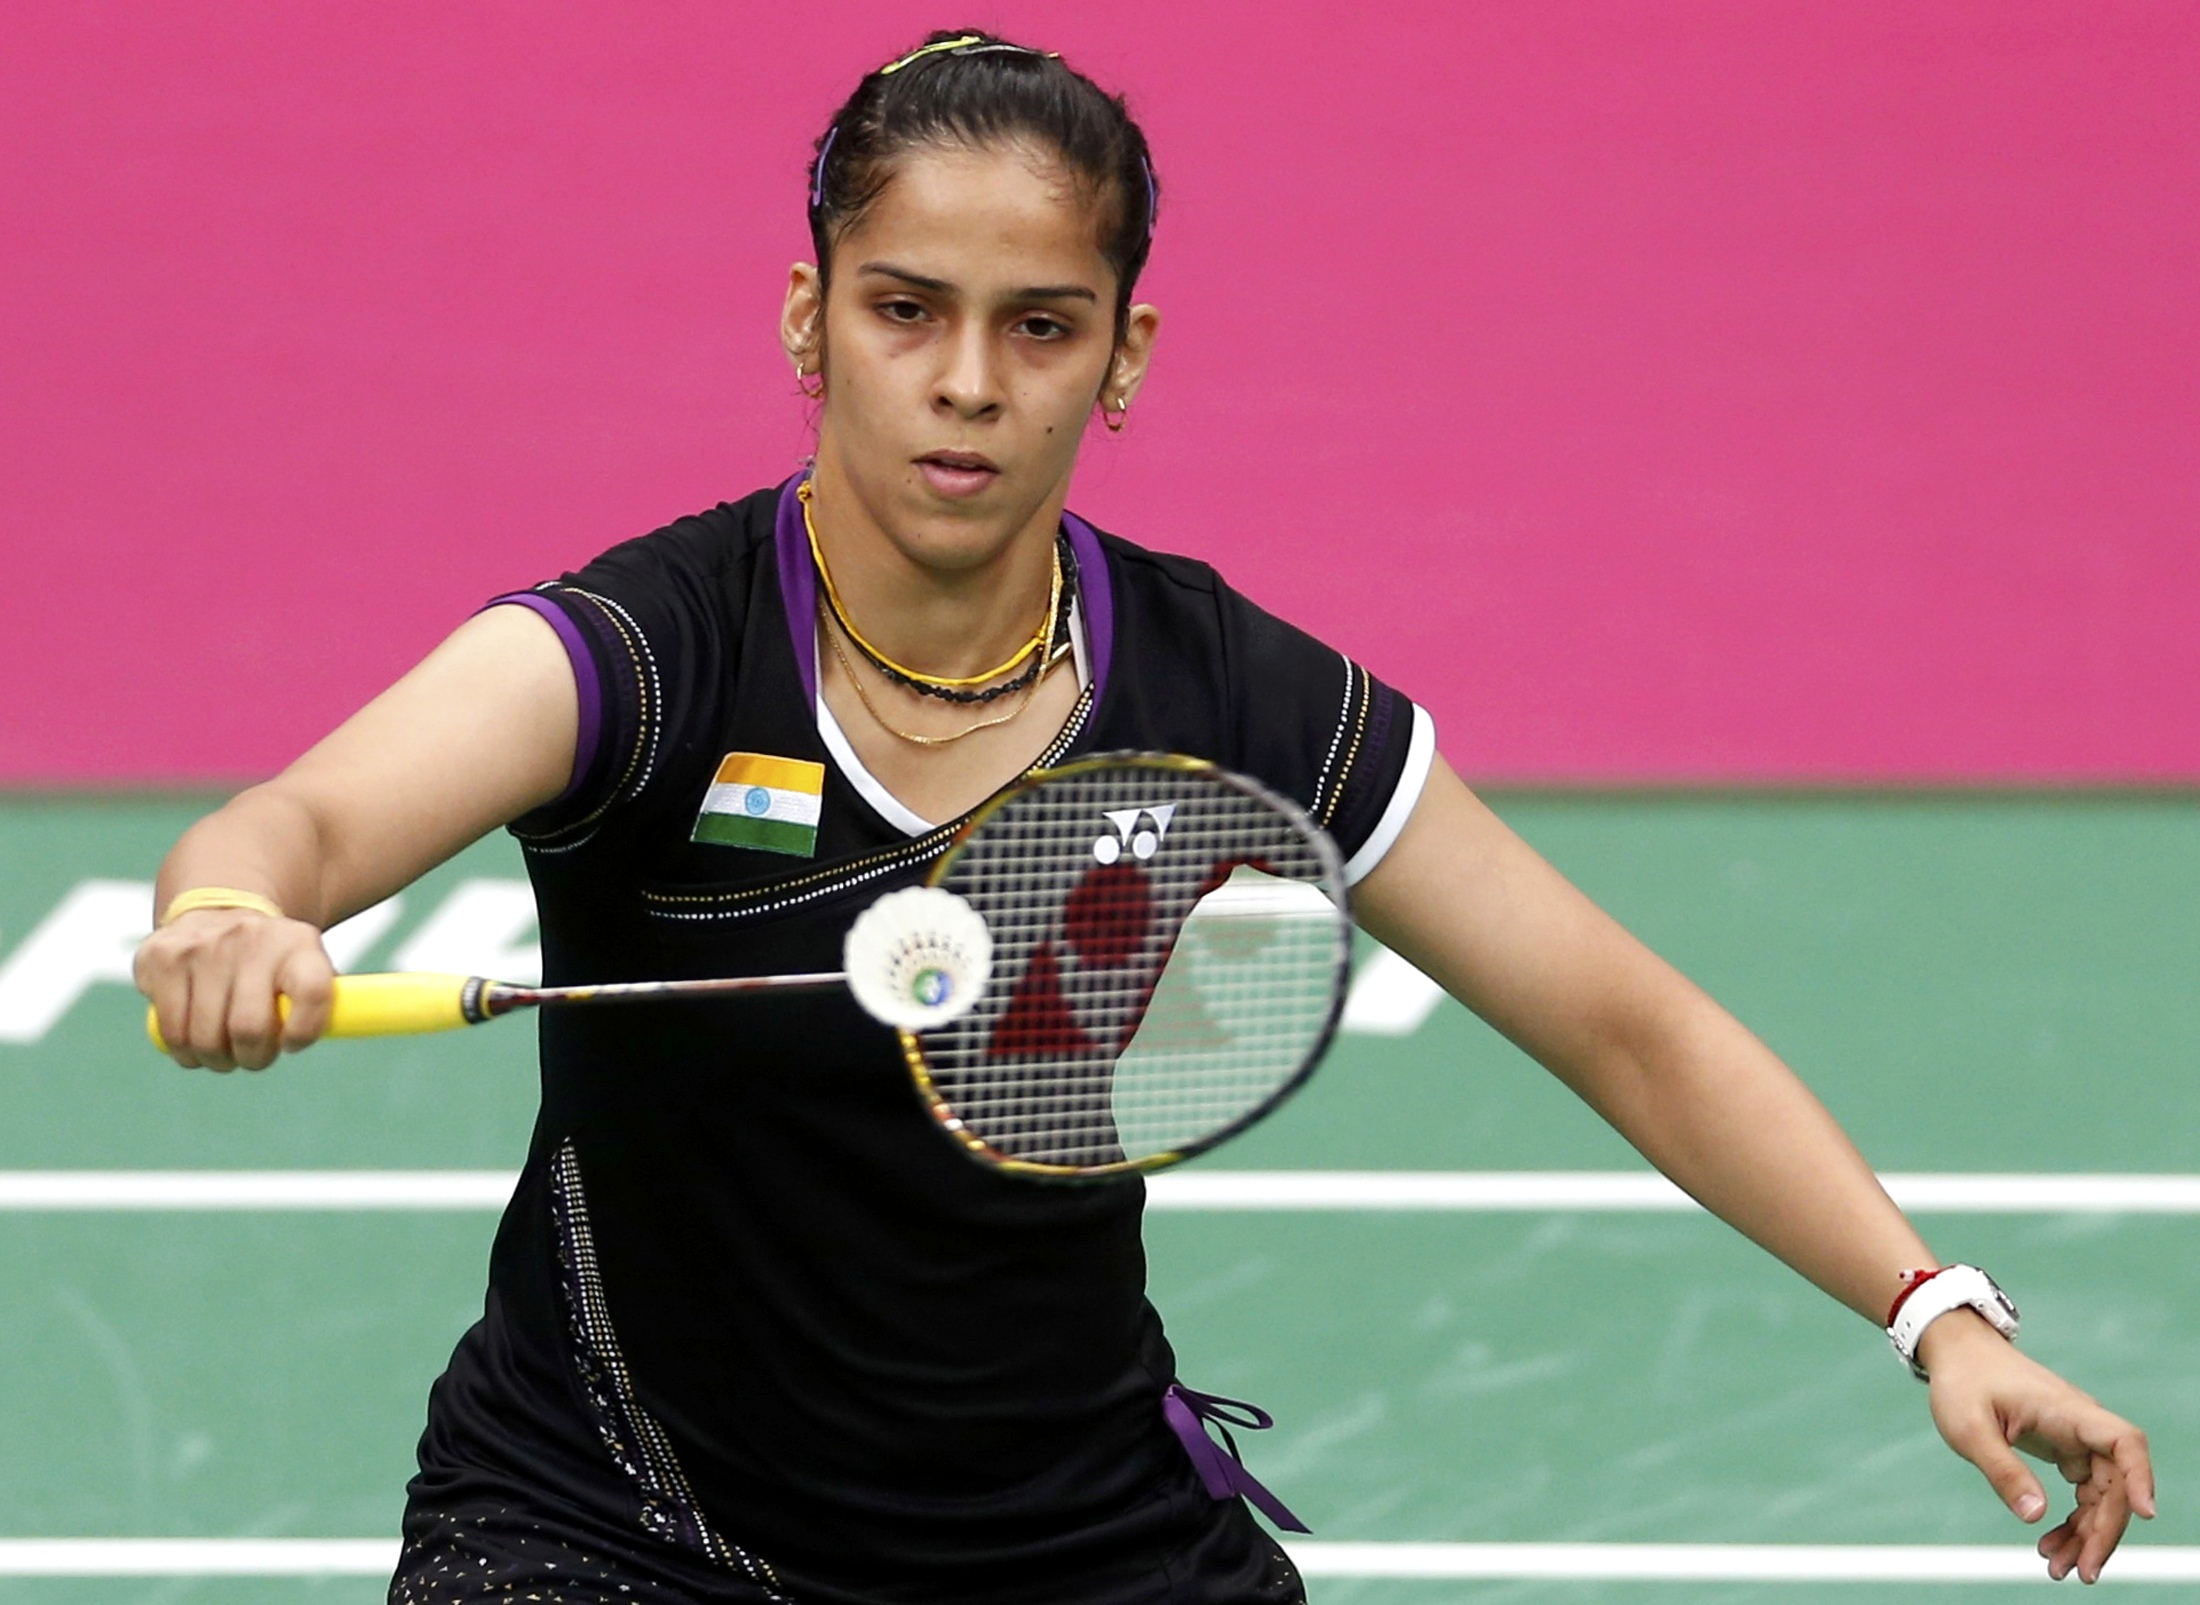 PHOTOS: 10 hottest buys of the Indian Badminton League